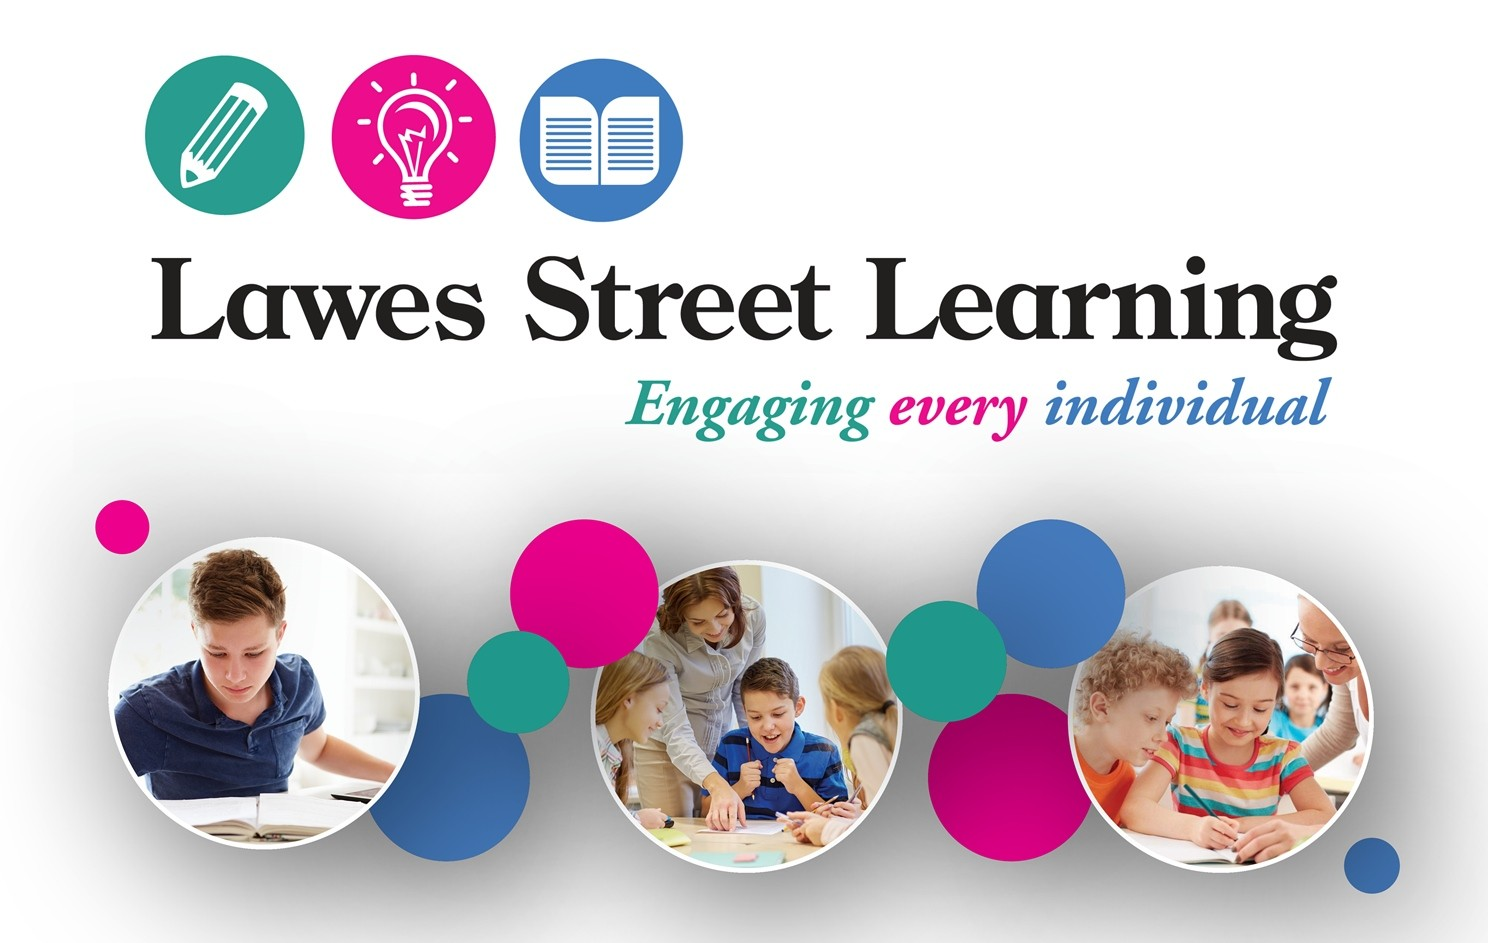 Lawes Street Learning